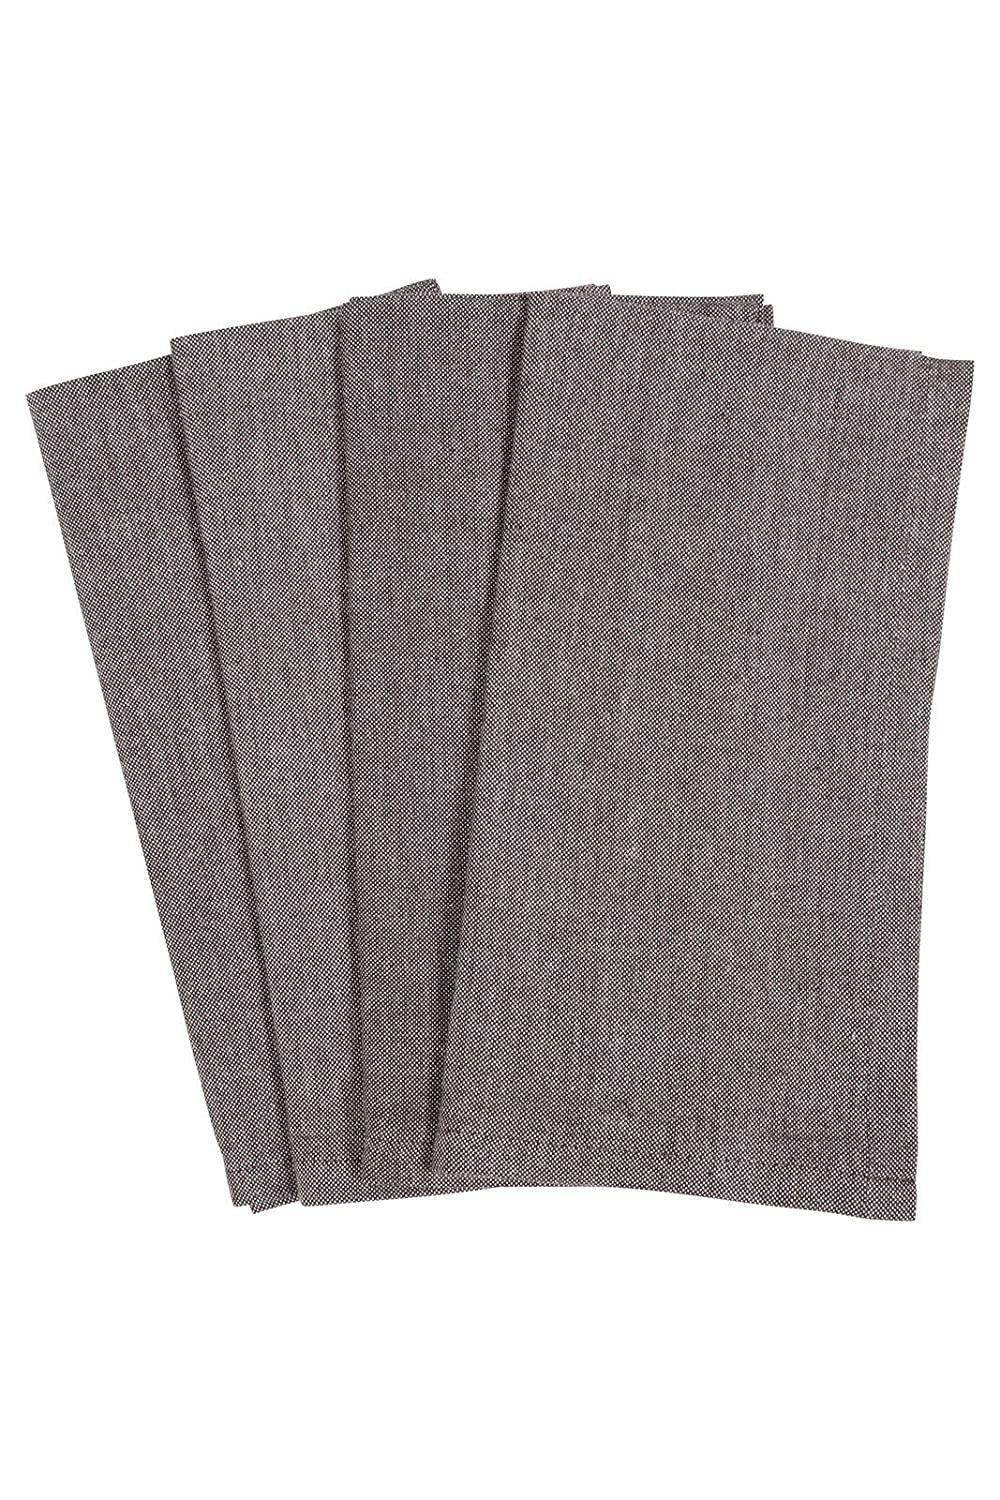 KAF Home Chambray Napkins 100/% Cotton Set of 4 Red